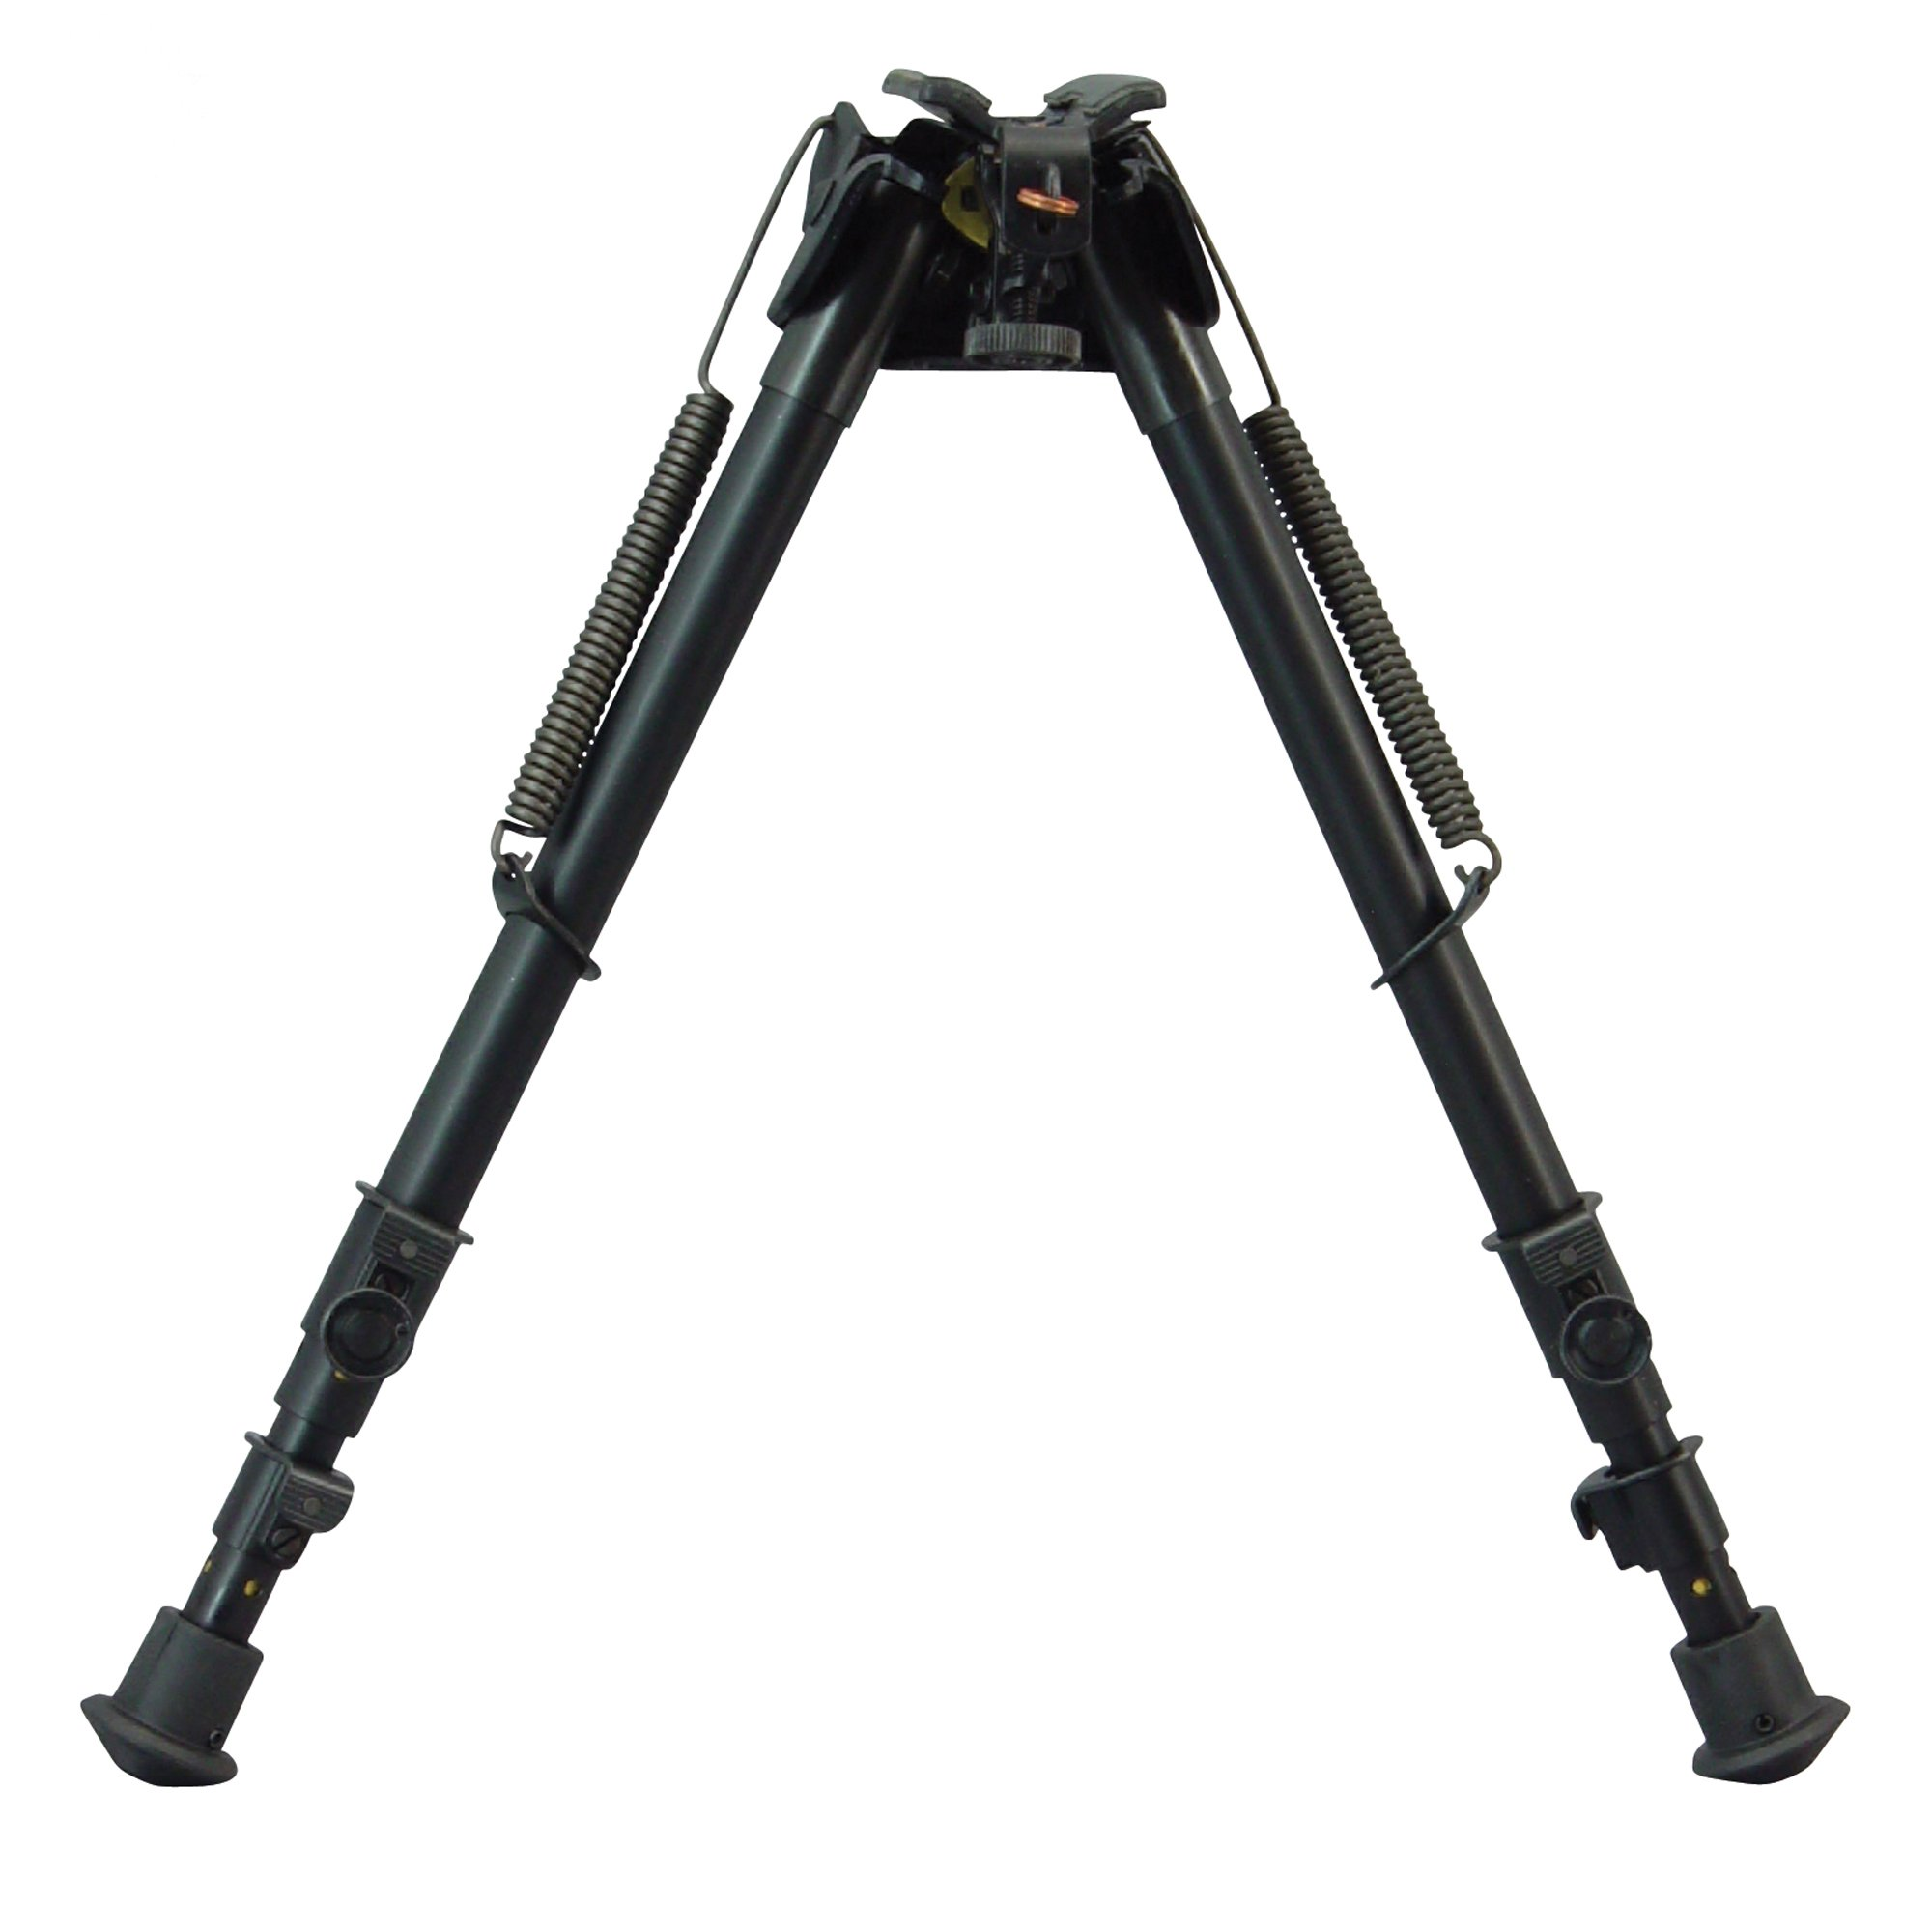 Harris Engineering S-25 Hinged Base 12-25-Inch BiPod